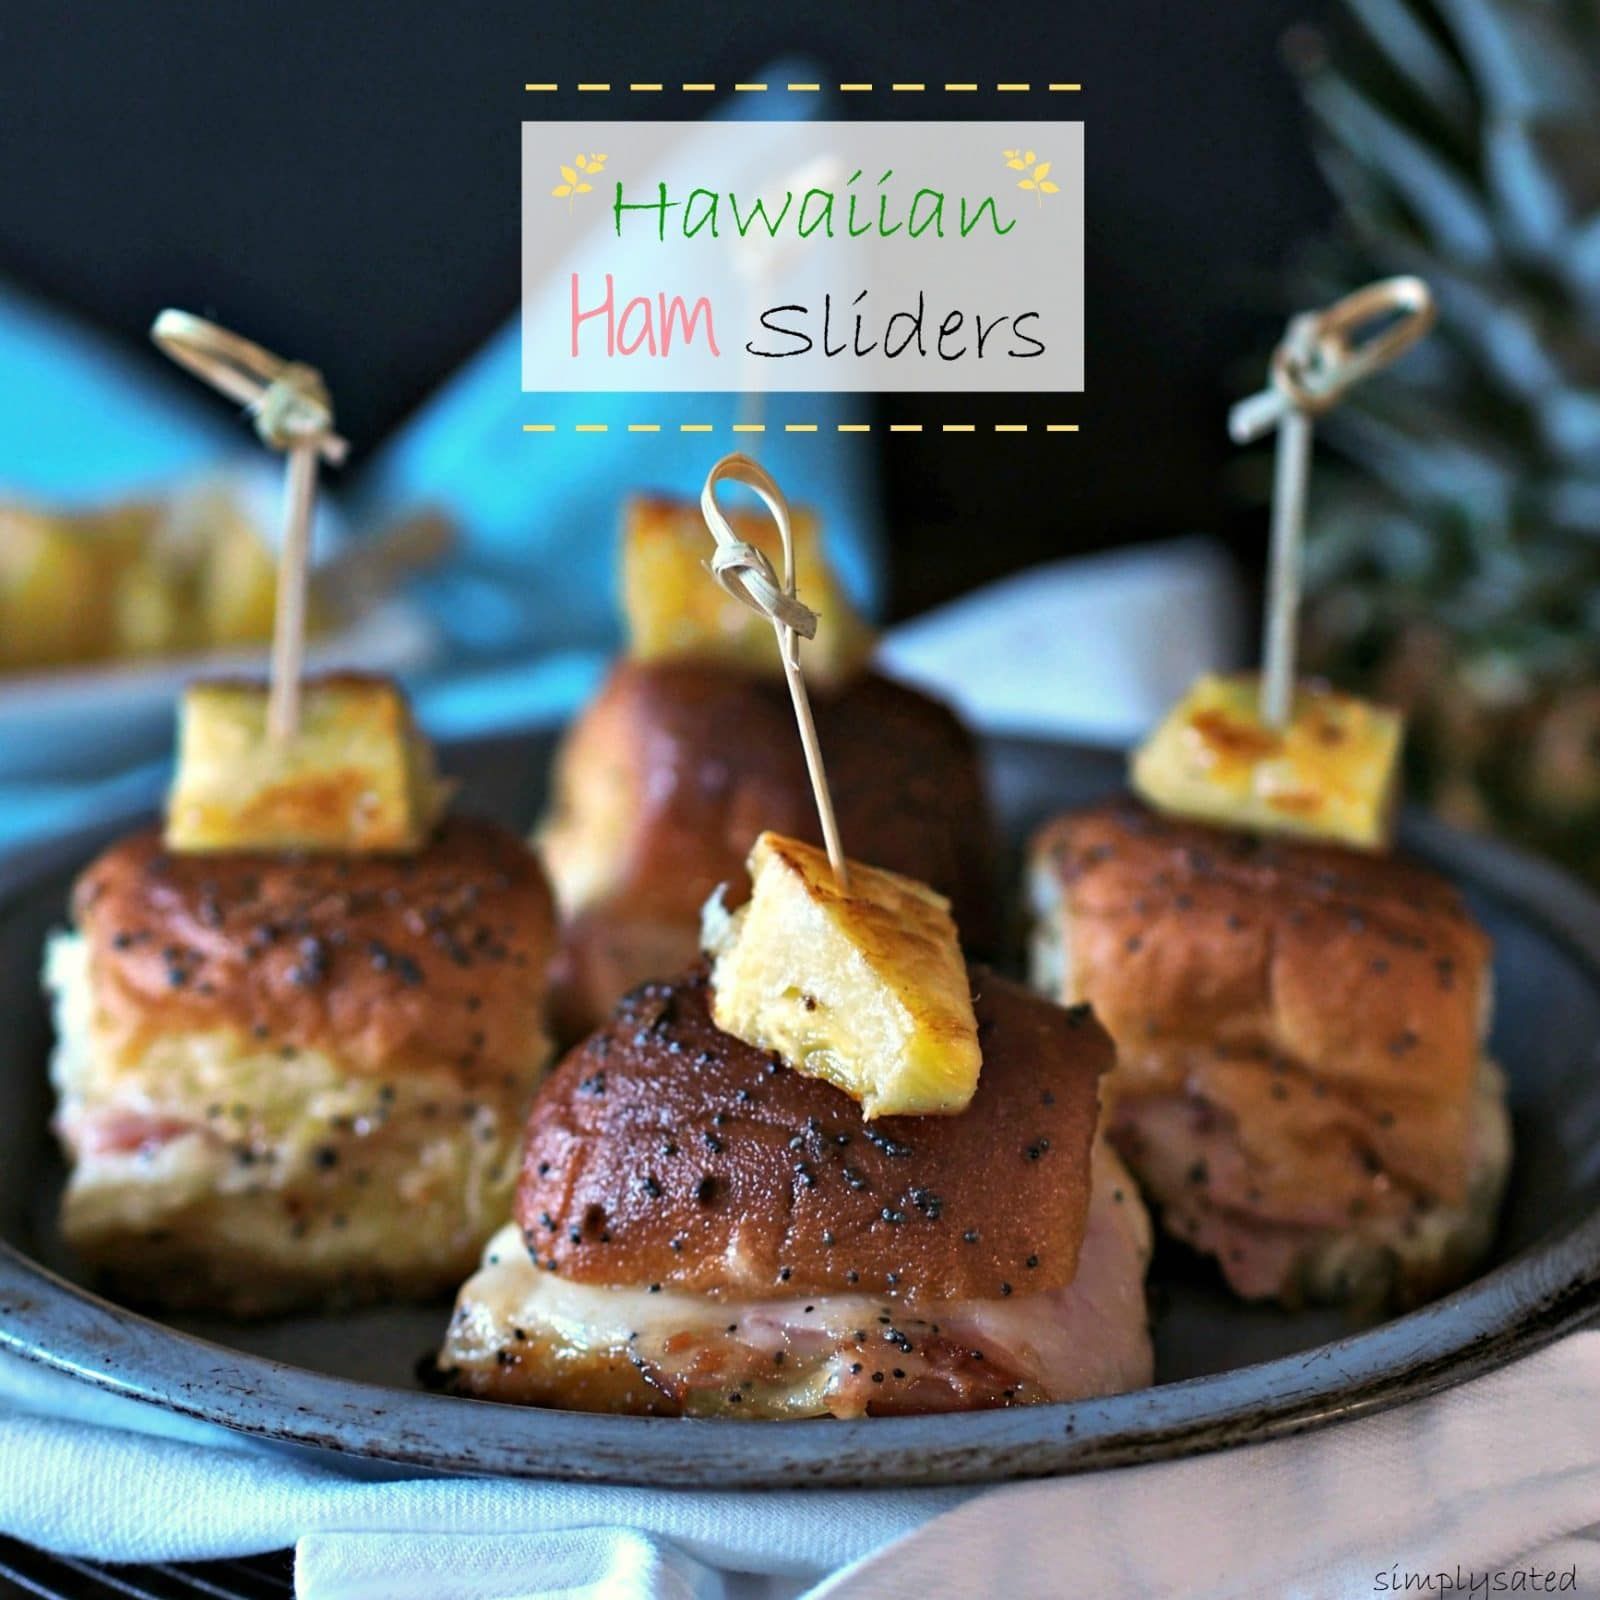 know, I know. You don't have to tell me Hawaiian Ham Sliders have ...